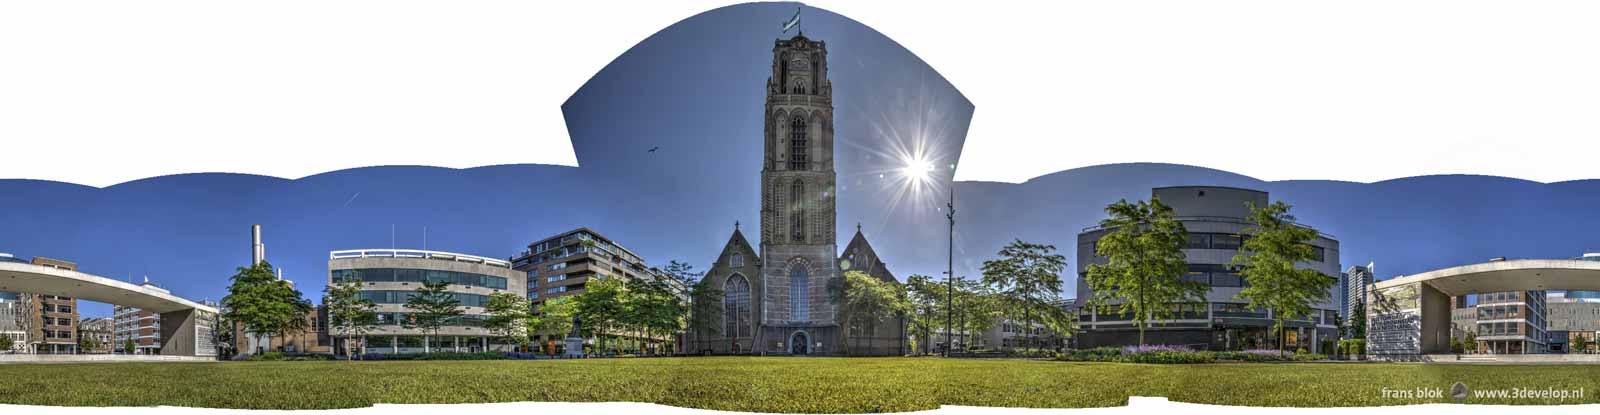 Twelve photos made at the park/square in front of Saint Lawrence's Church in Rotterdam, stitched together with Photomerge in Photoshop in a 360 degrees panorama